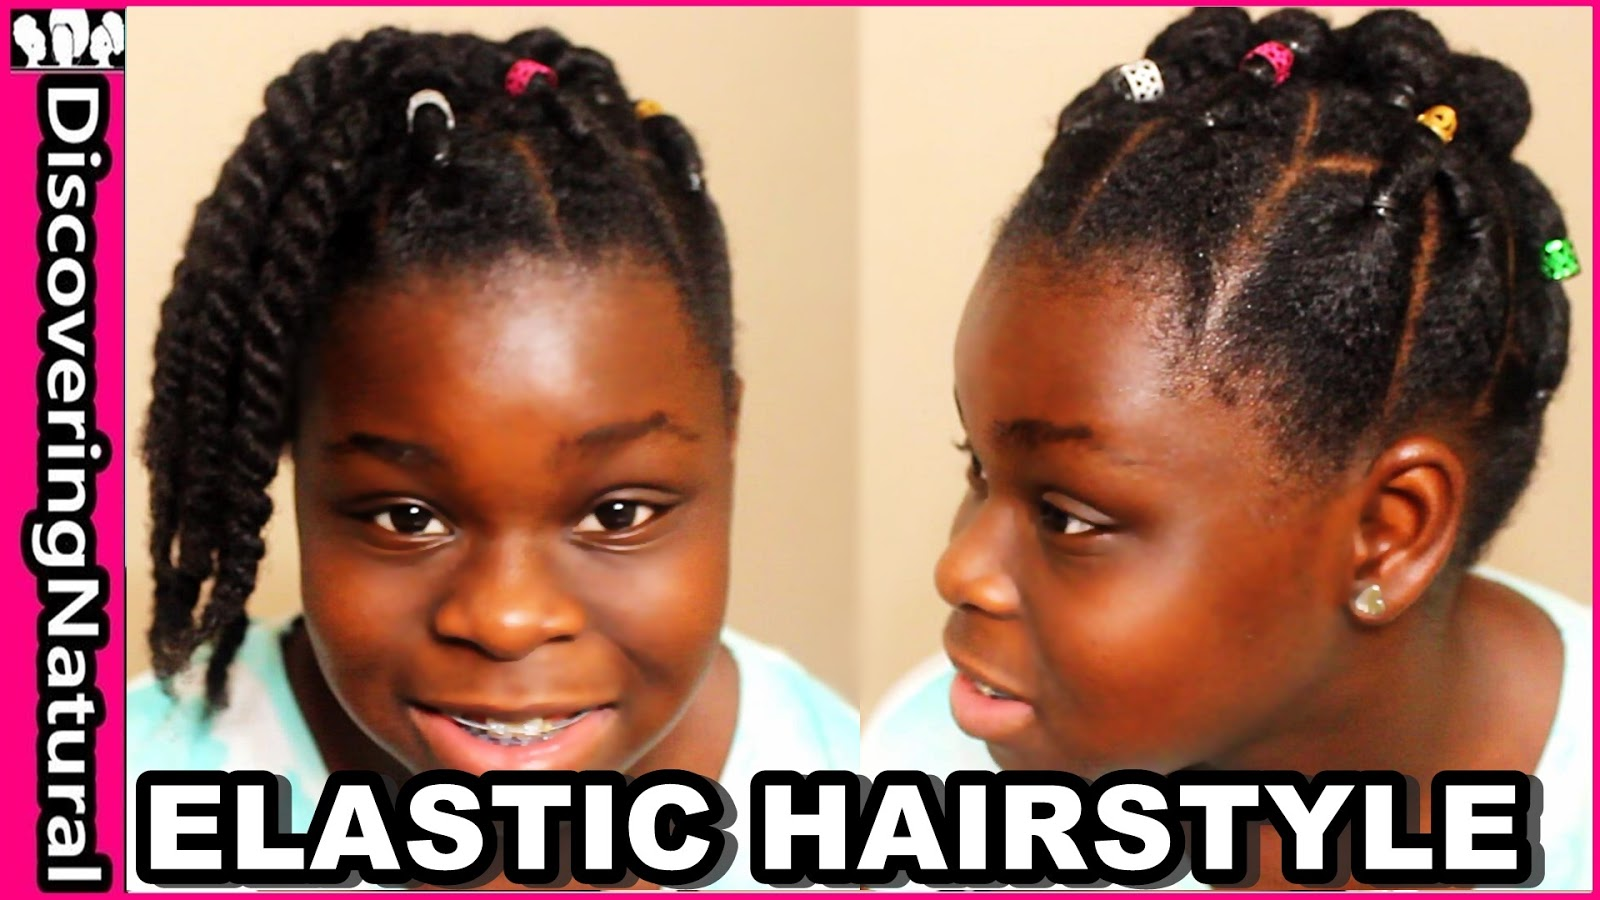 discoveringnatural: cute elastic natural hairstyles: rubber band